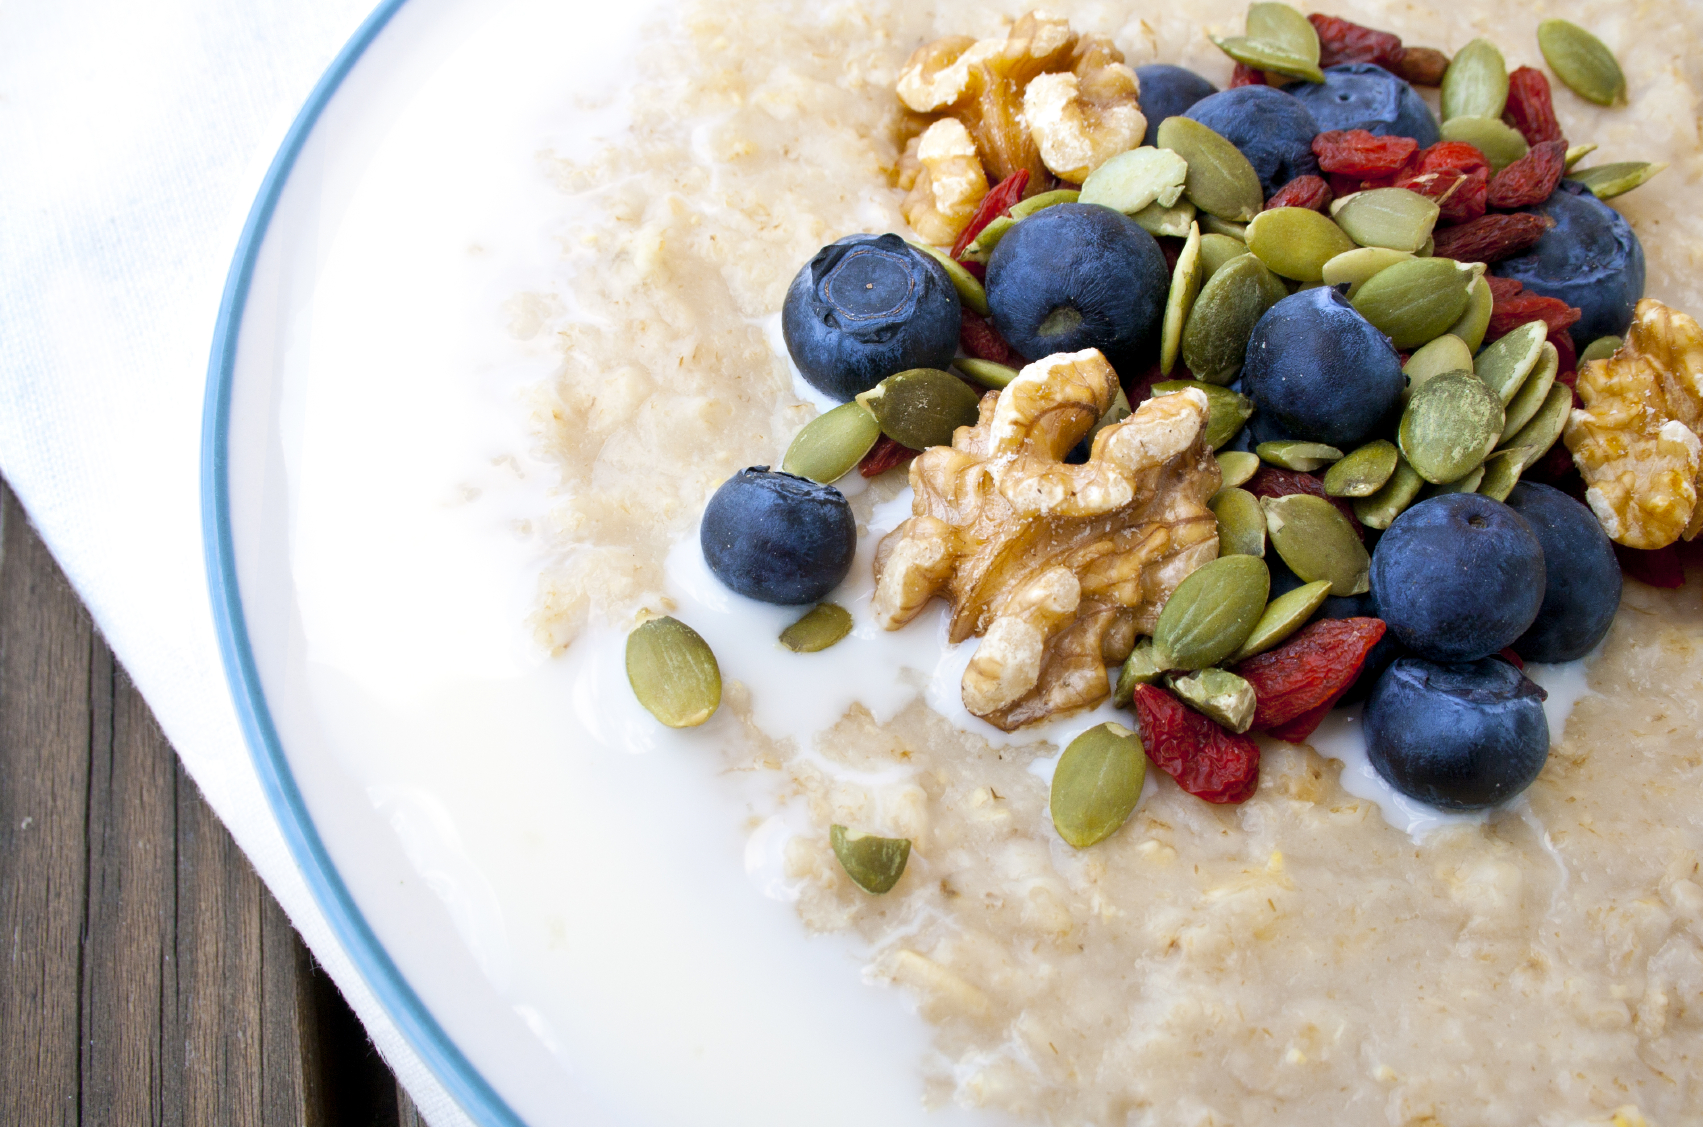 Get into a healthy breakfast regime for 2015